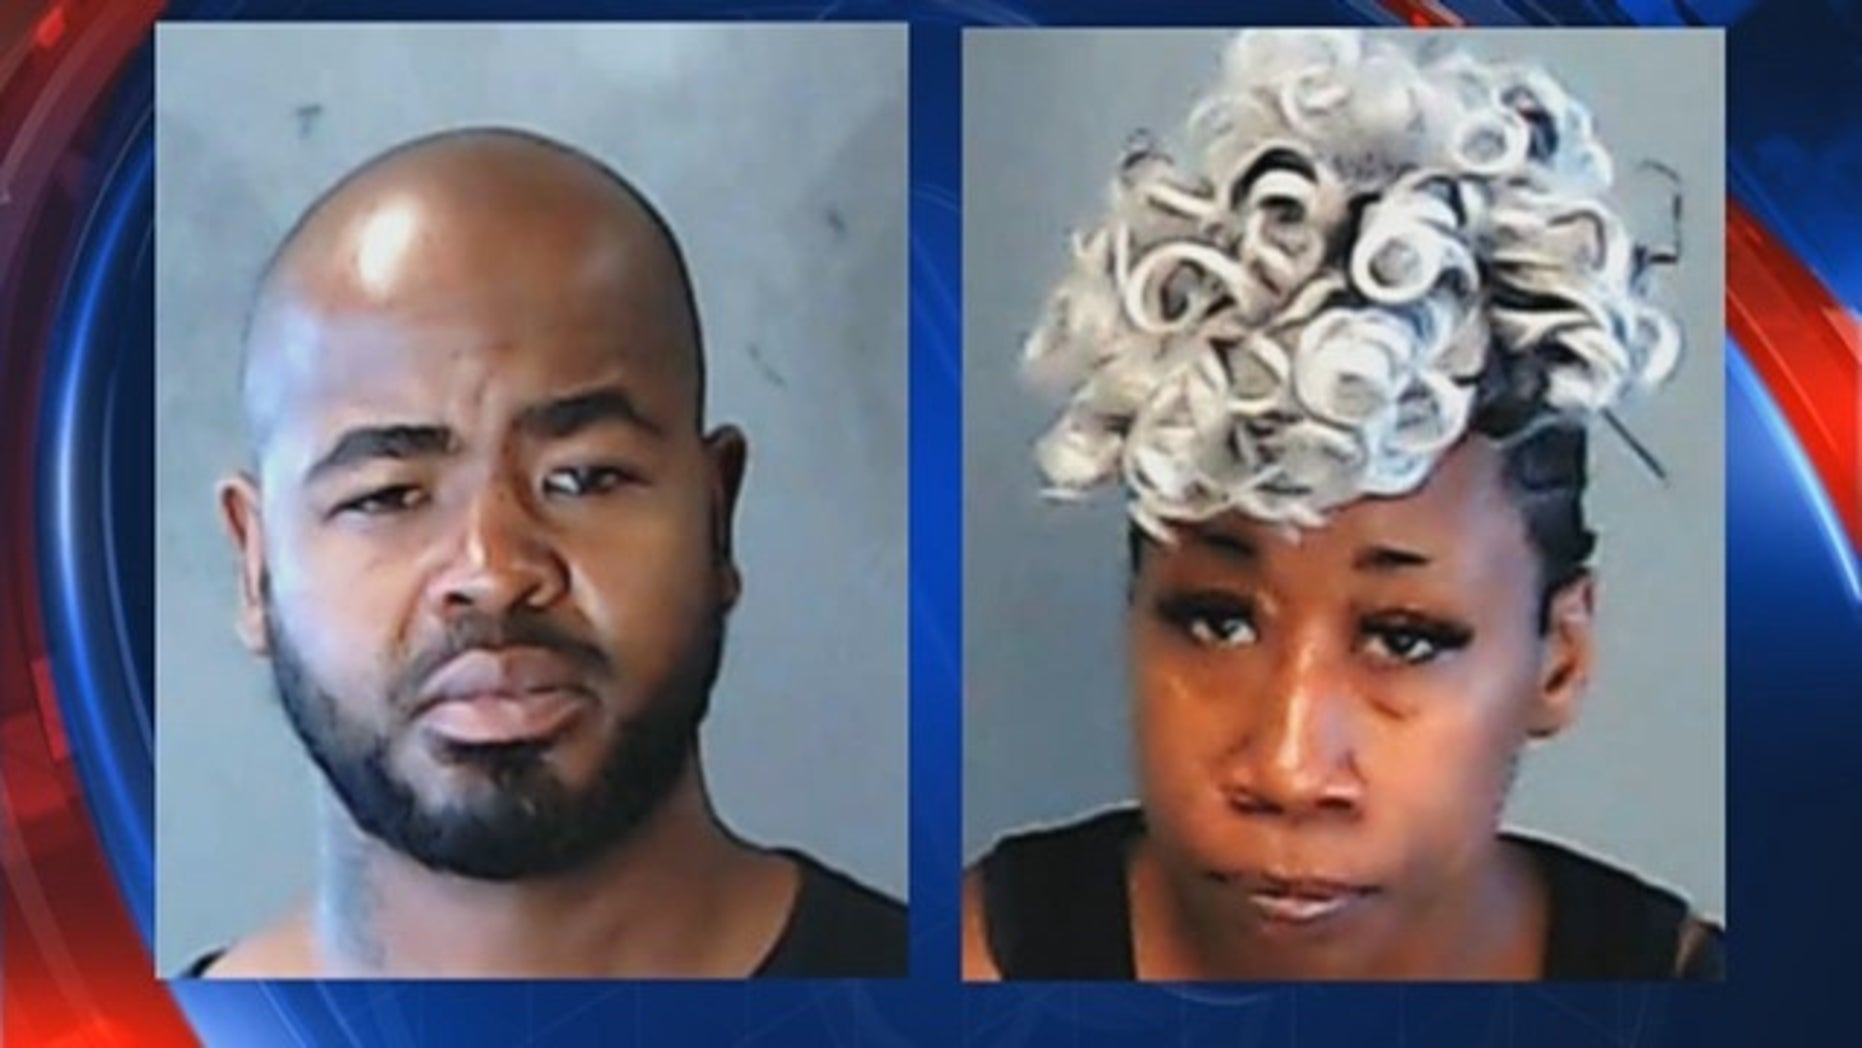 Thomas Charles Young, 42, left, and Tamara Raychell McGowan, 38, right, are in custody after being accused of holding two children captive, Georgia police say.